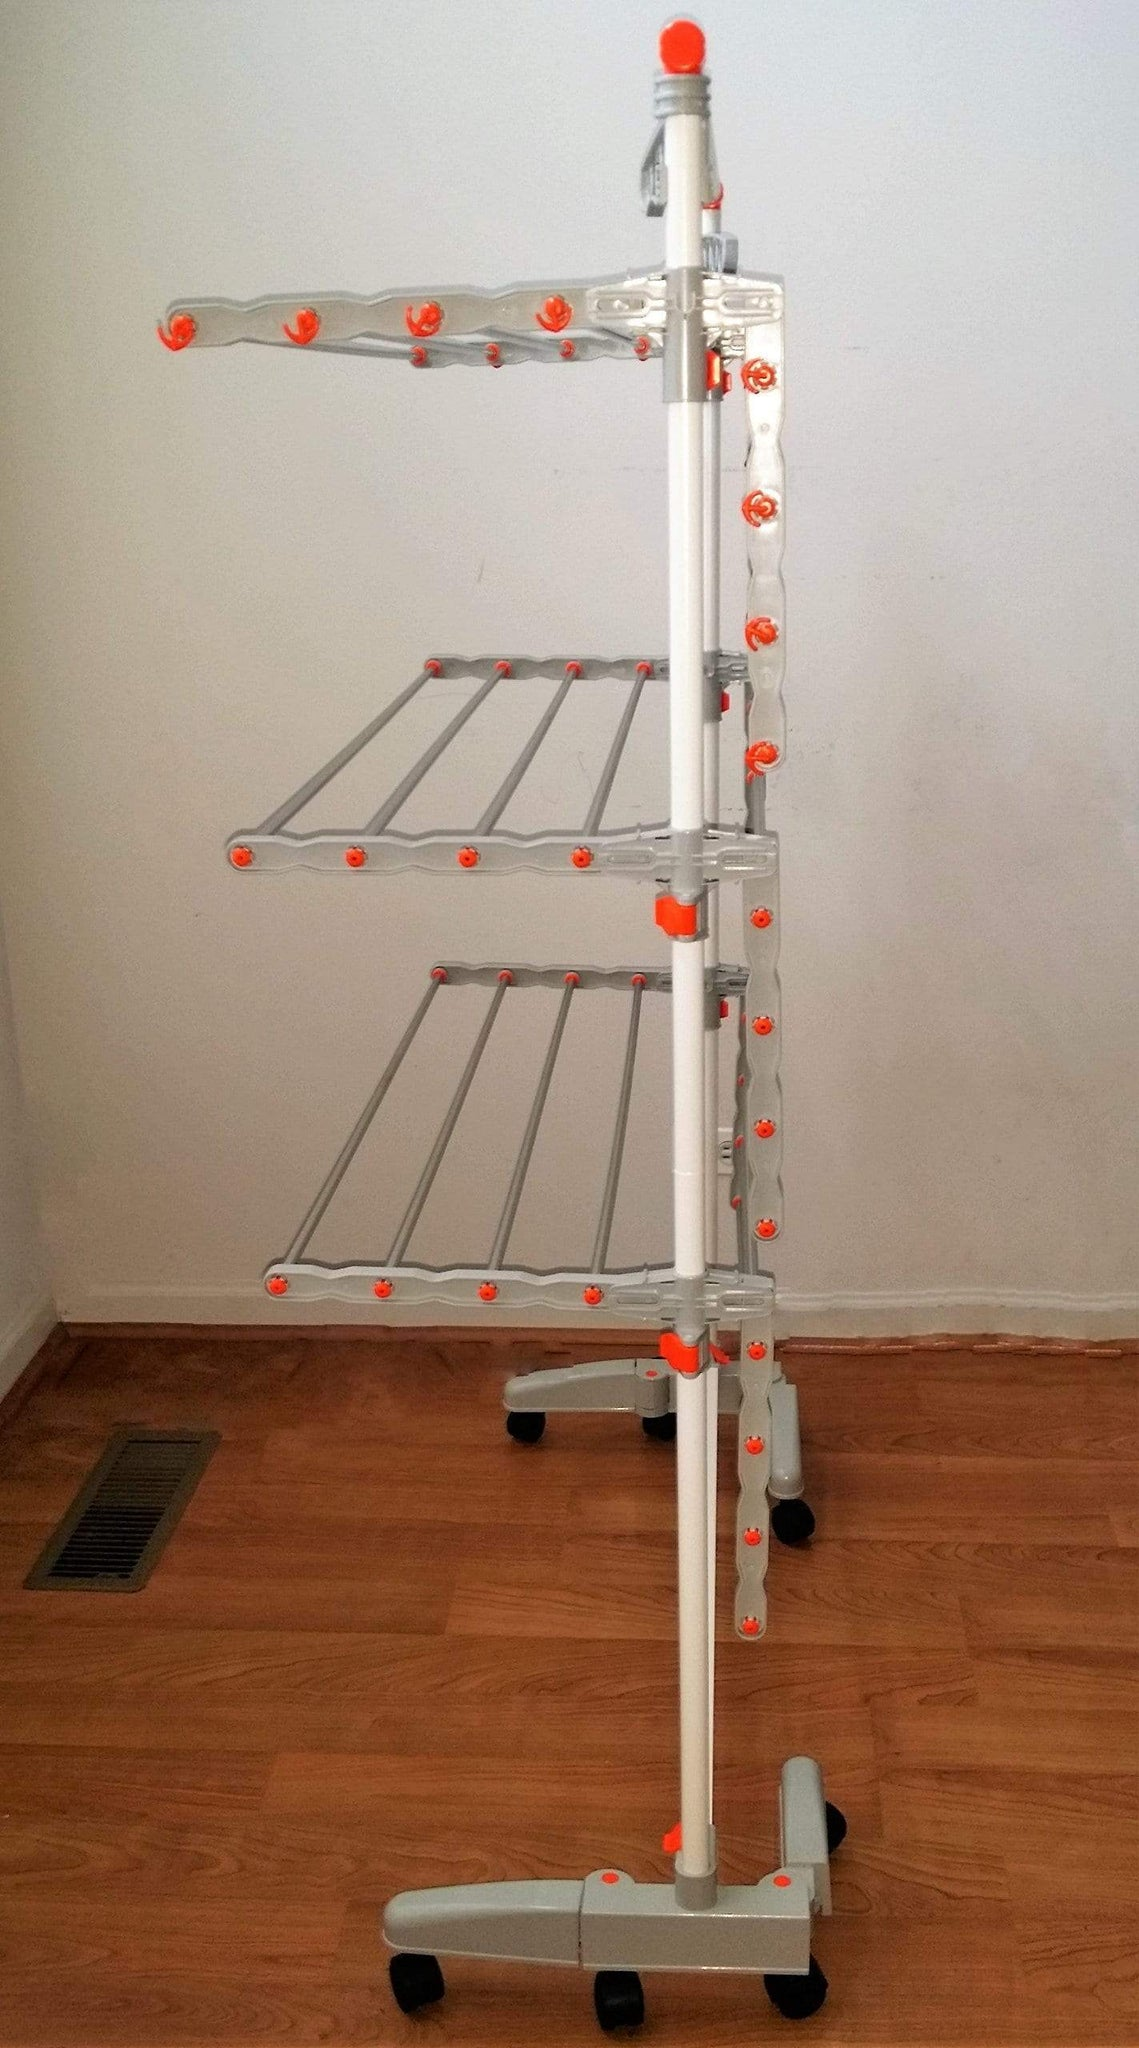 idee BDP-V23 Foldable Rolling 3-tier Clothes Laundry Drying Rack with Stainless Steel Hanging Rods, Collapsible Shelves and Base for Easy Storage, Made-in-Korea Premium Size Orange